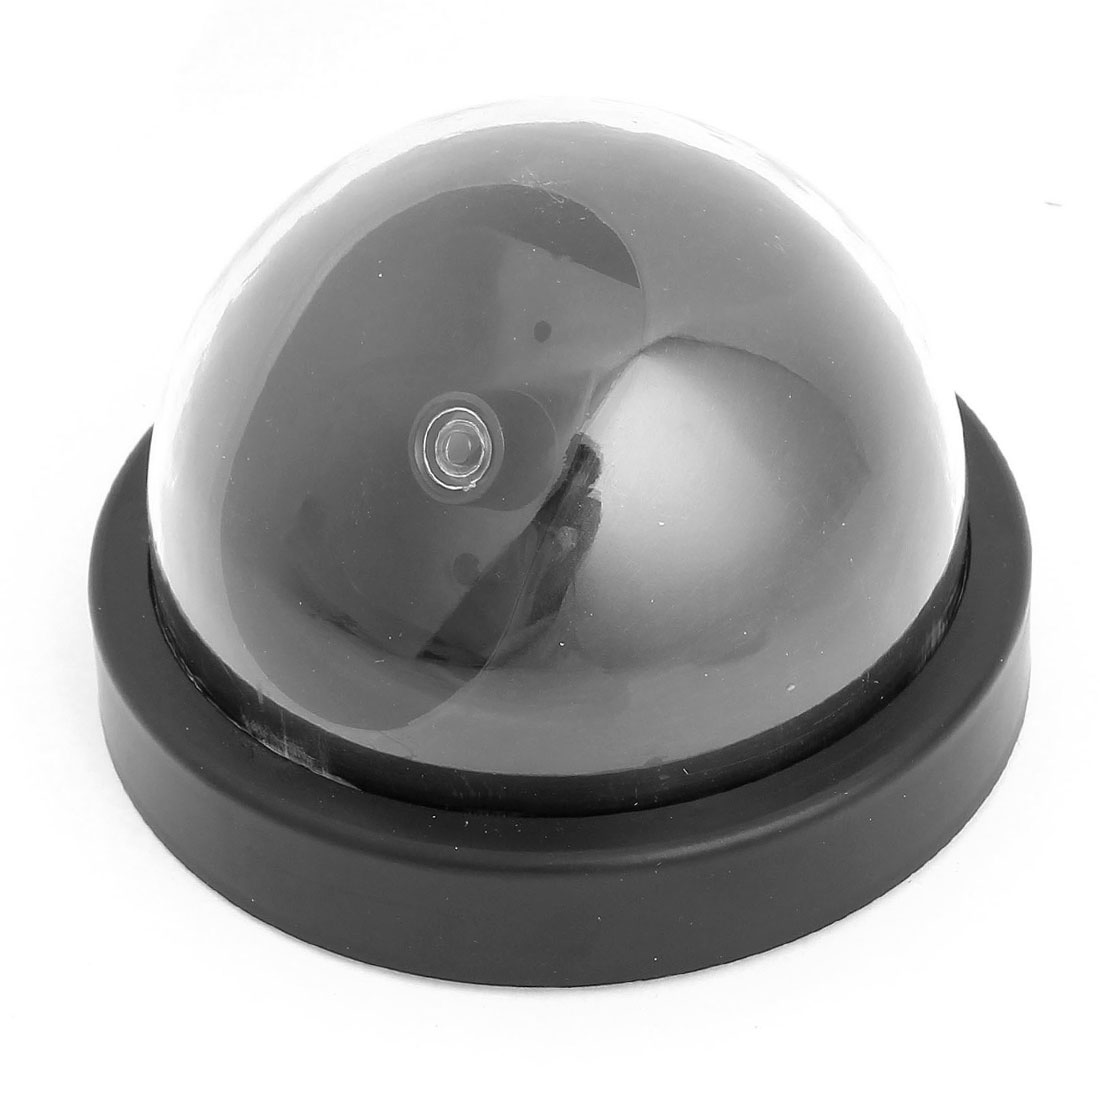 Battery Operated Red LED Flashing Light Security Surveillance Dummy Dome Camera